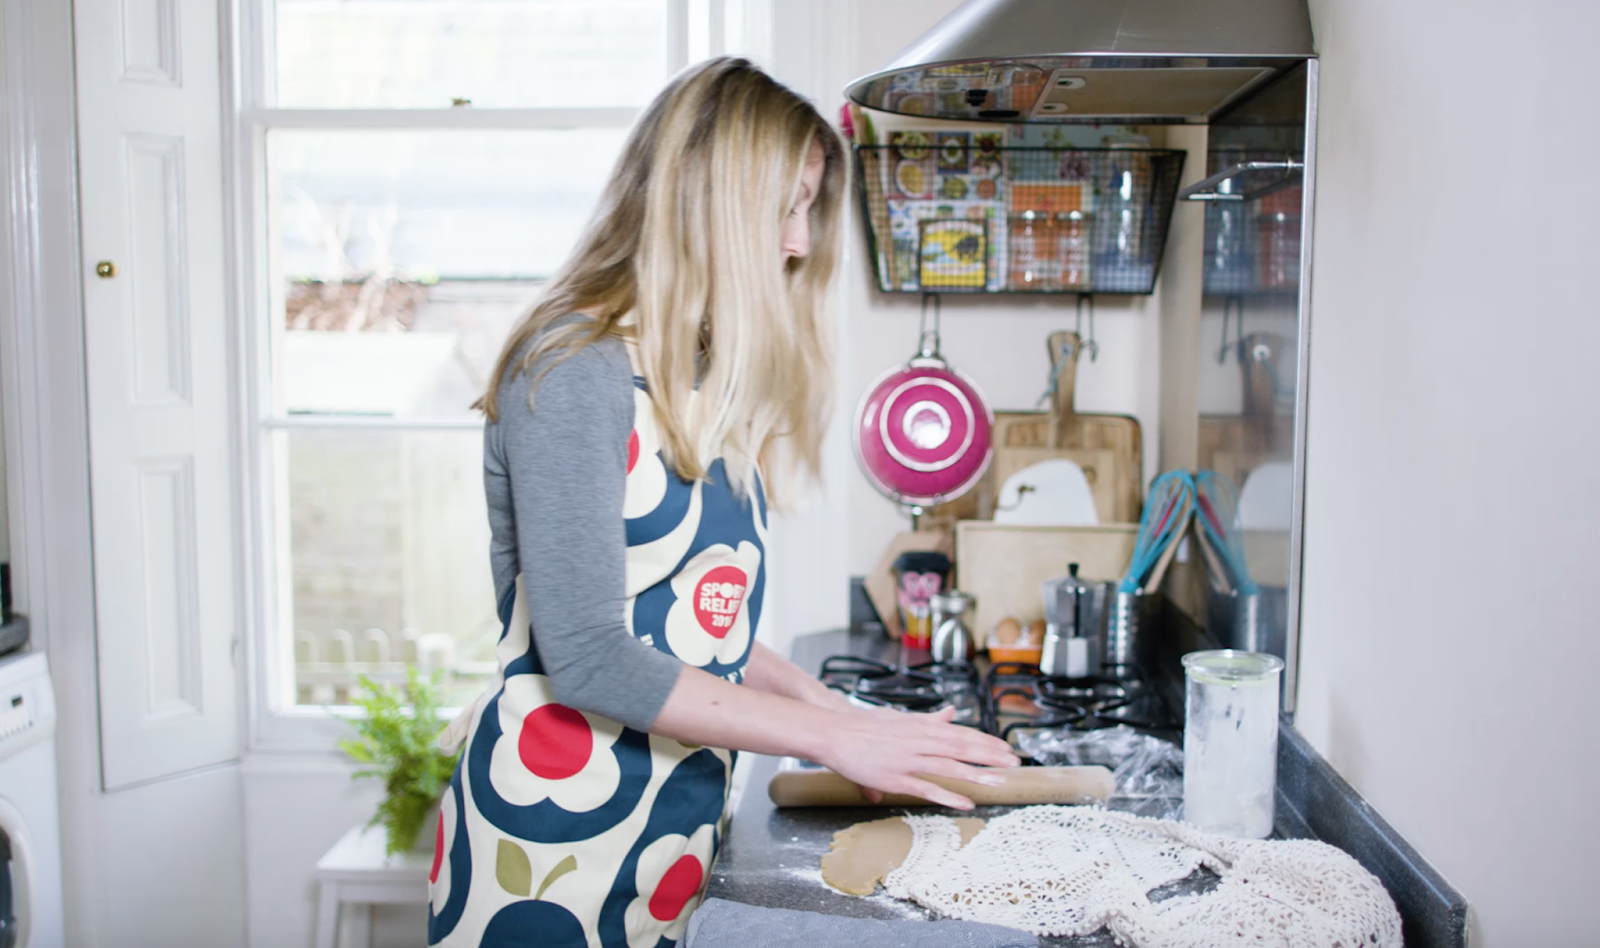 Baking with orla keily Sport Relief